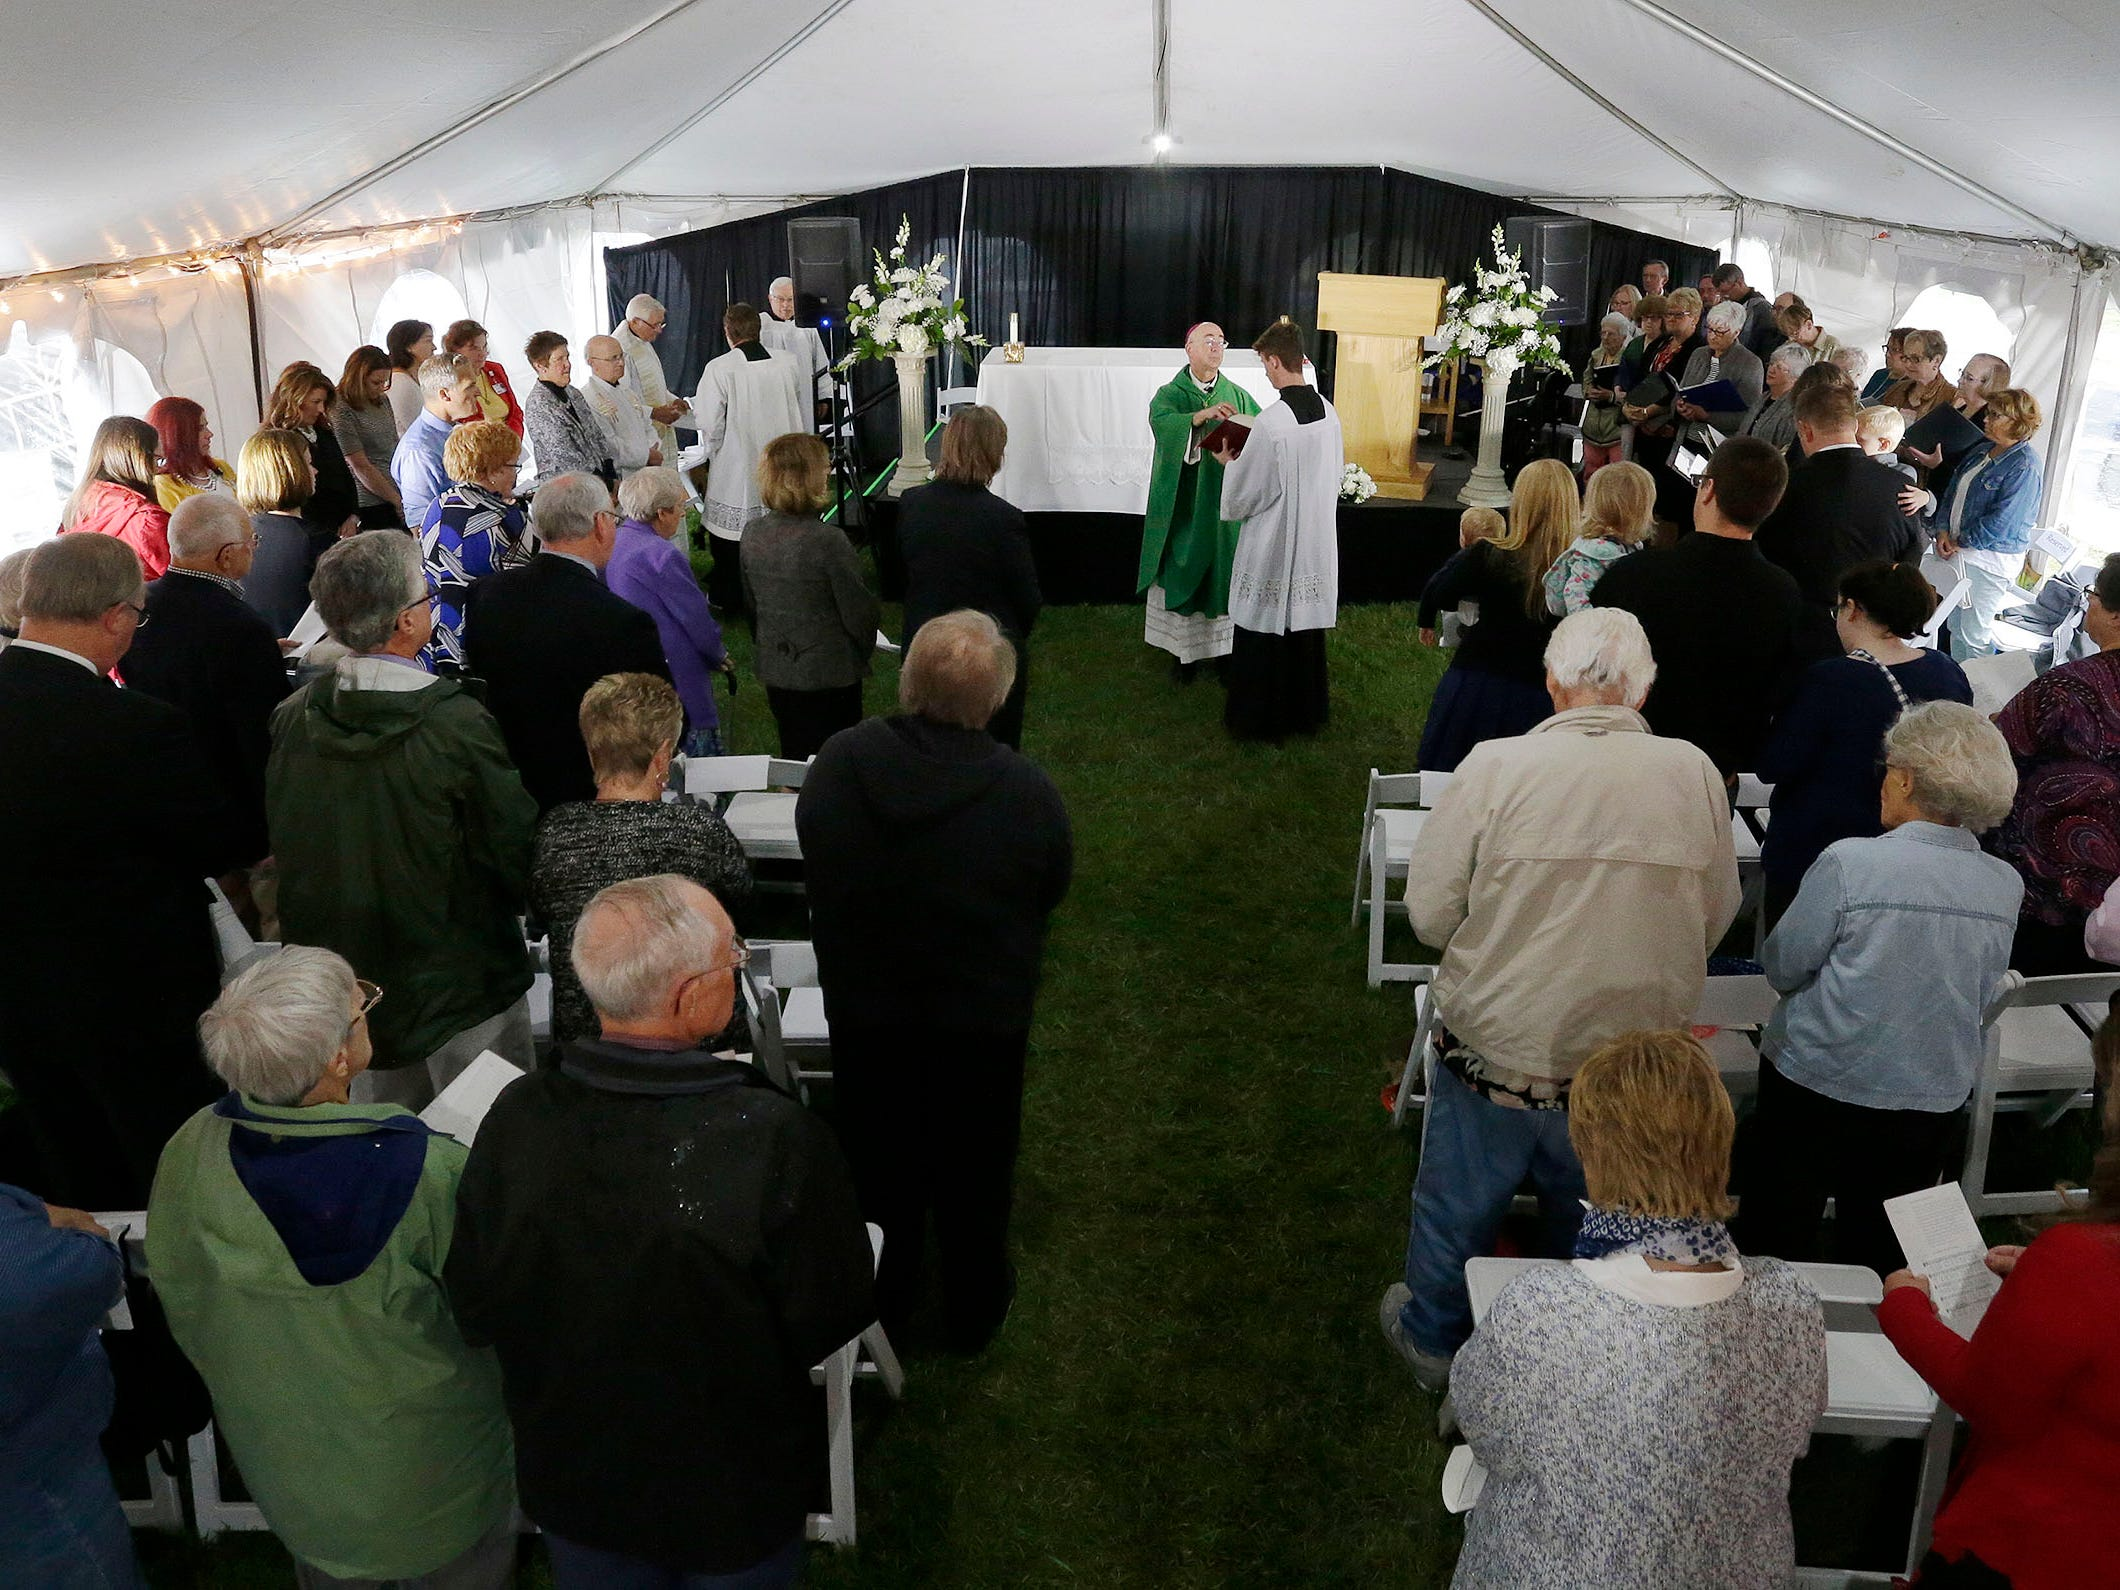 An overall at the Mass of Celebration at HSHS St. Nicholas Hospital for the new CEO Justin Selle, Wednesday, September 19, 2018, in Sheboygan, Wis.